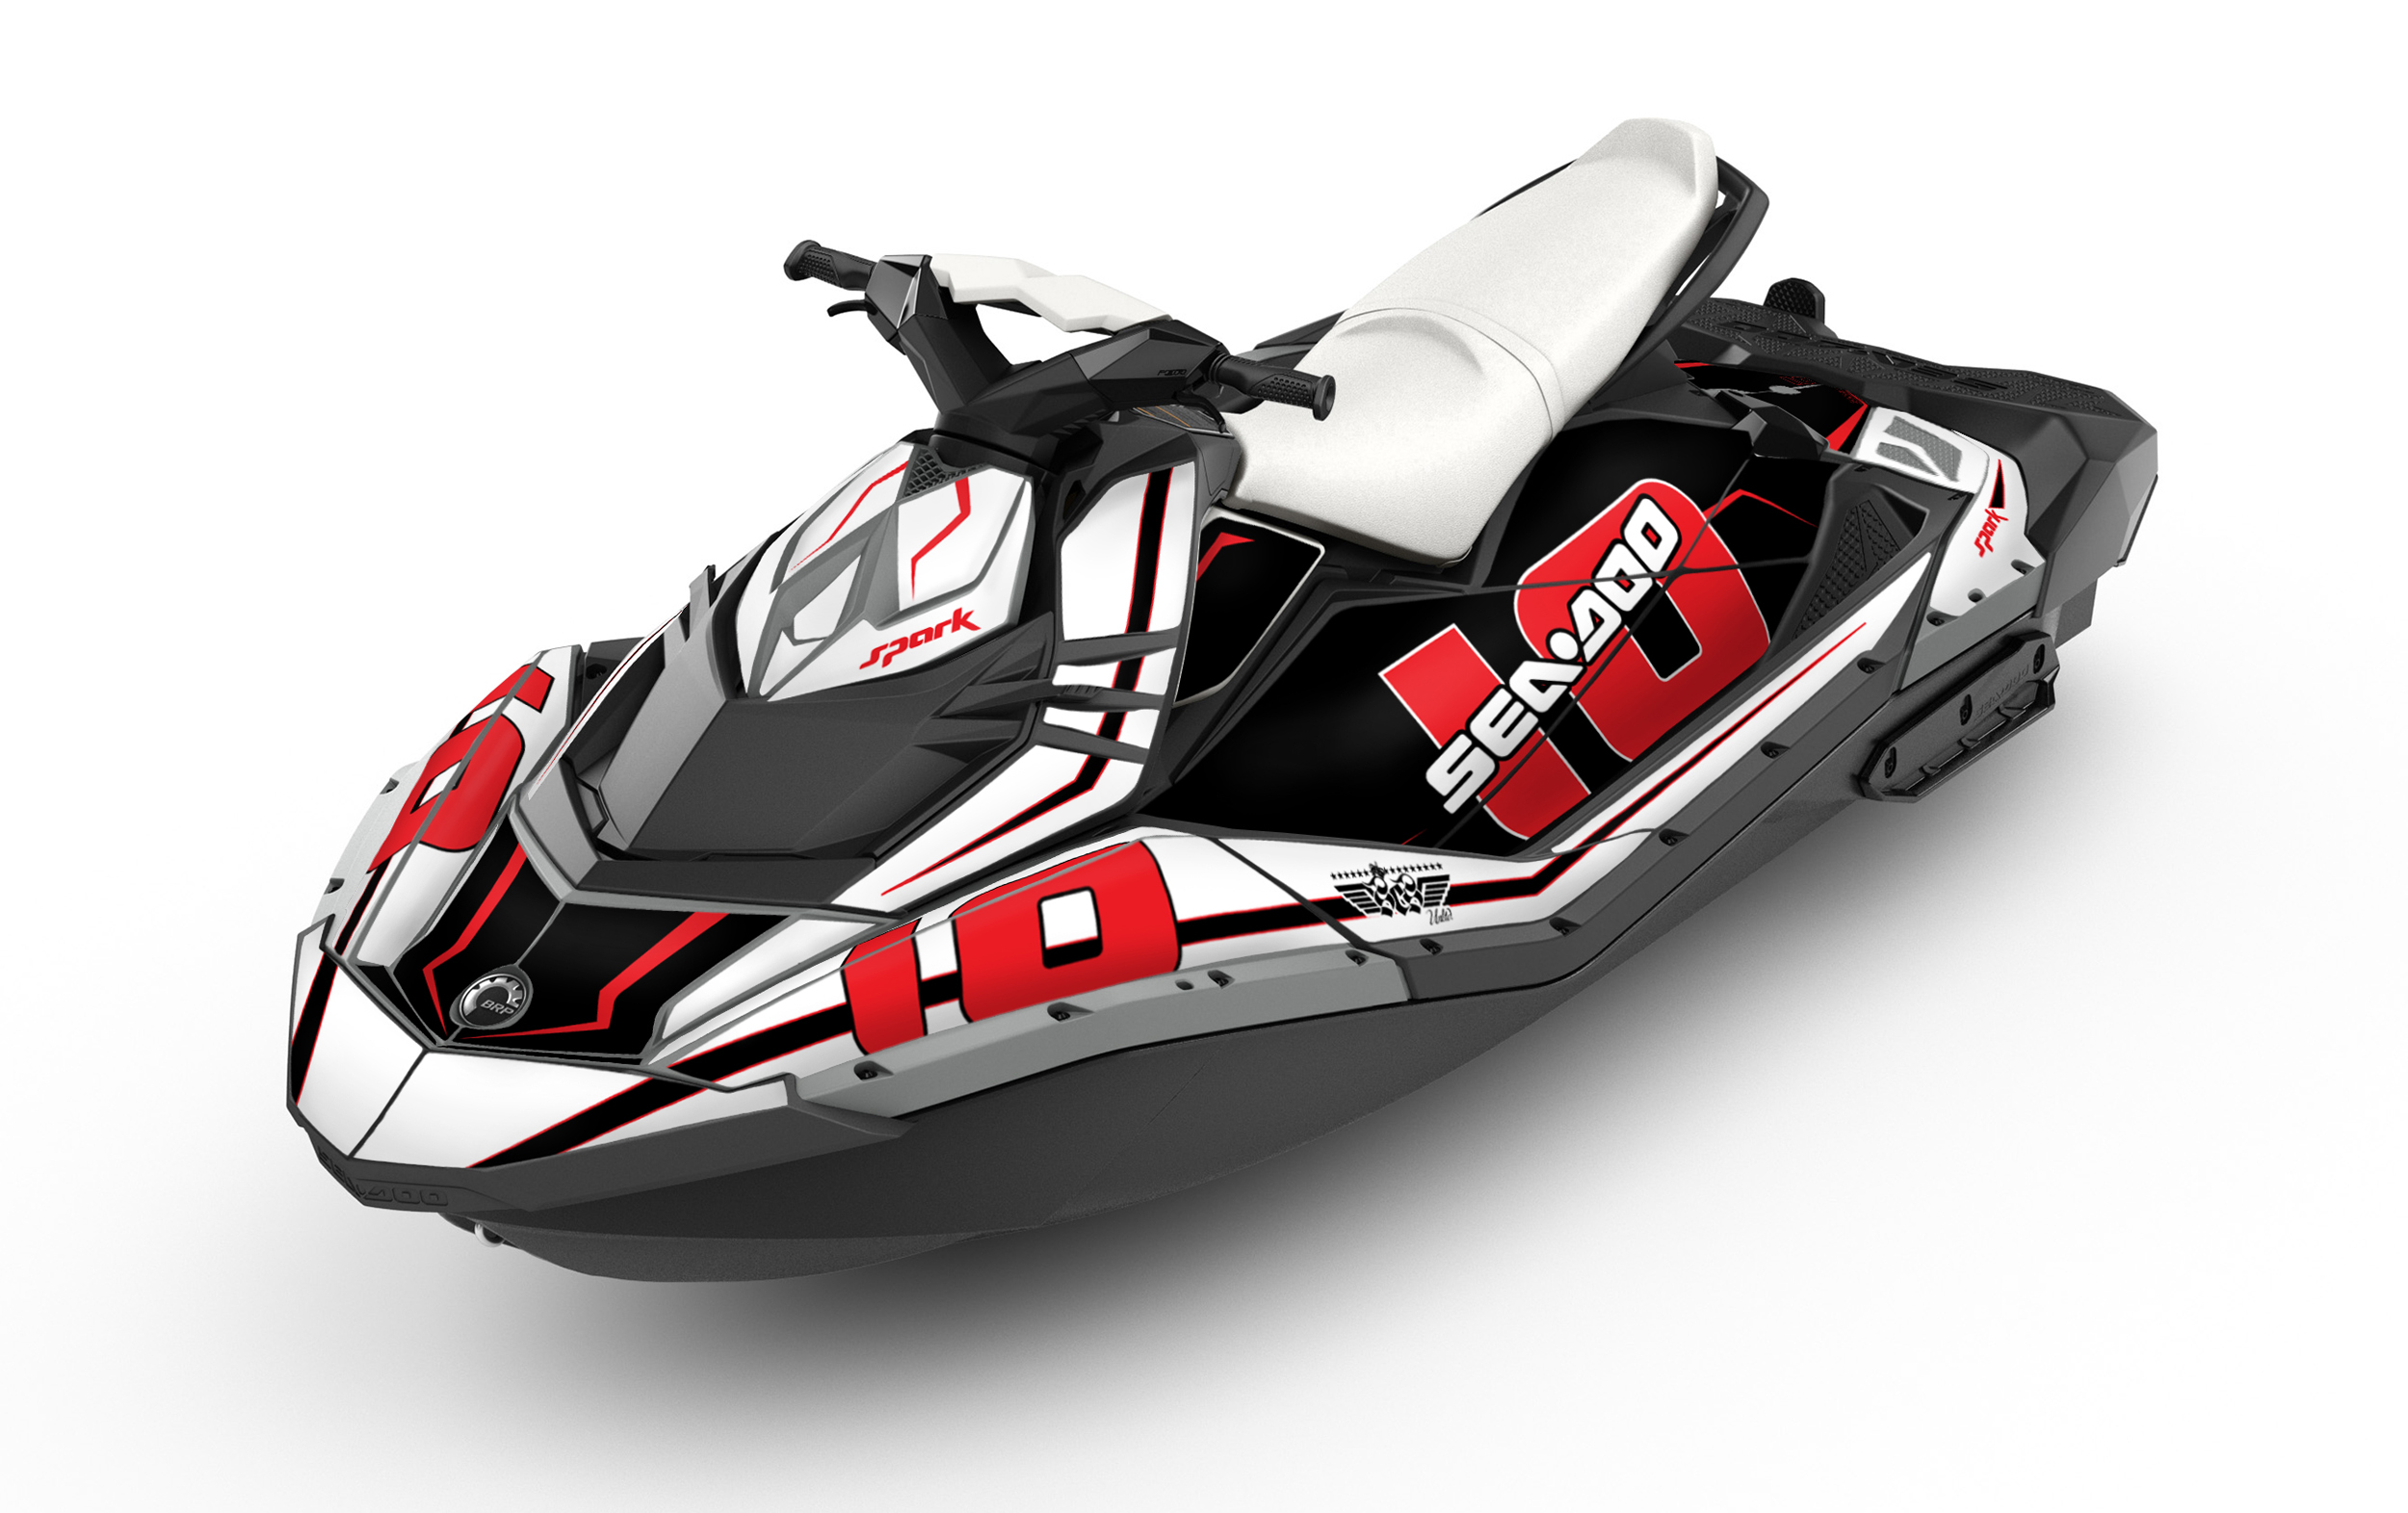 First Look Sea Doo Unveils The All New Spark For 2014